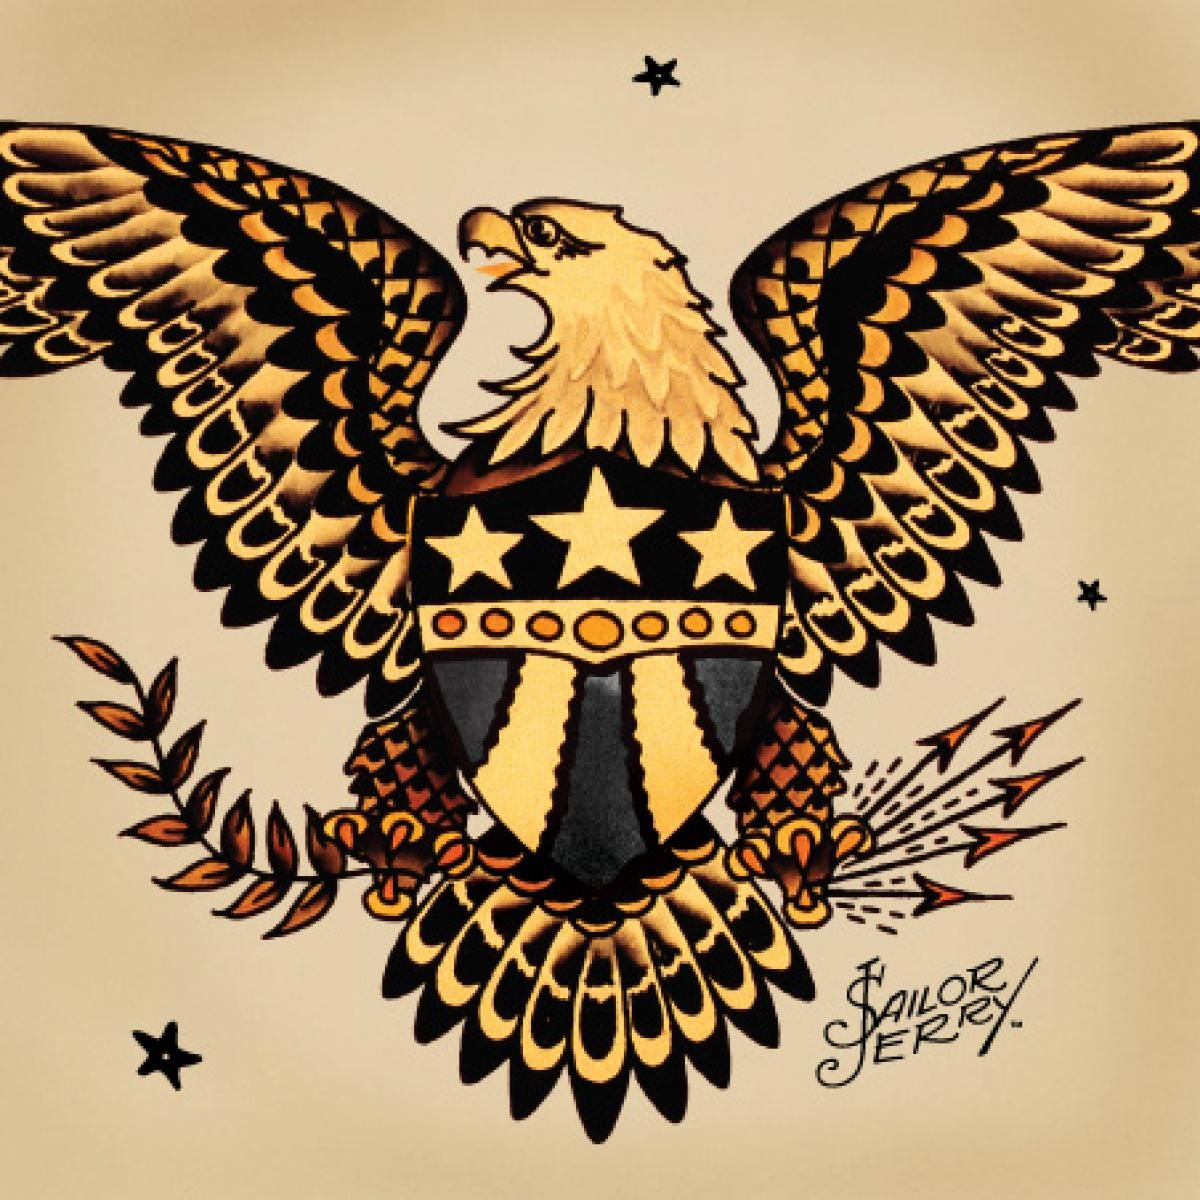 267a73530 Traditional American Eagle Tattoos Jerrys eagles are fierce | Tattoo ...